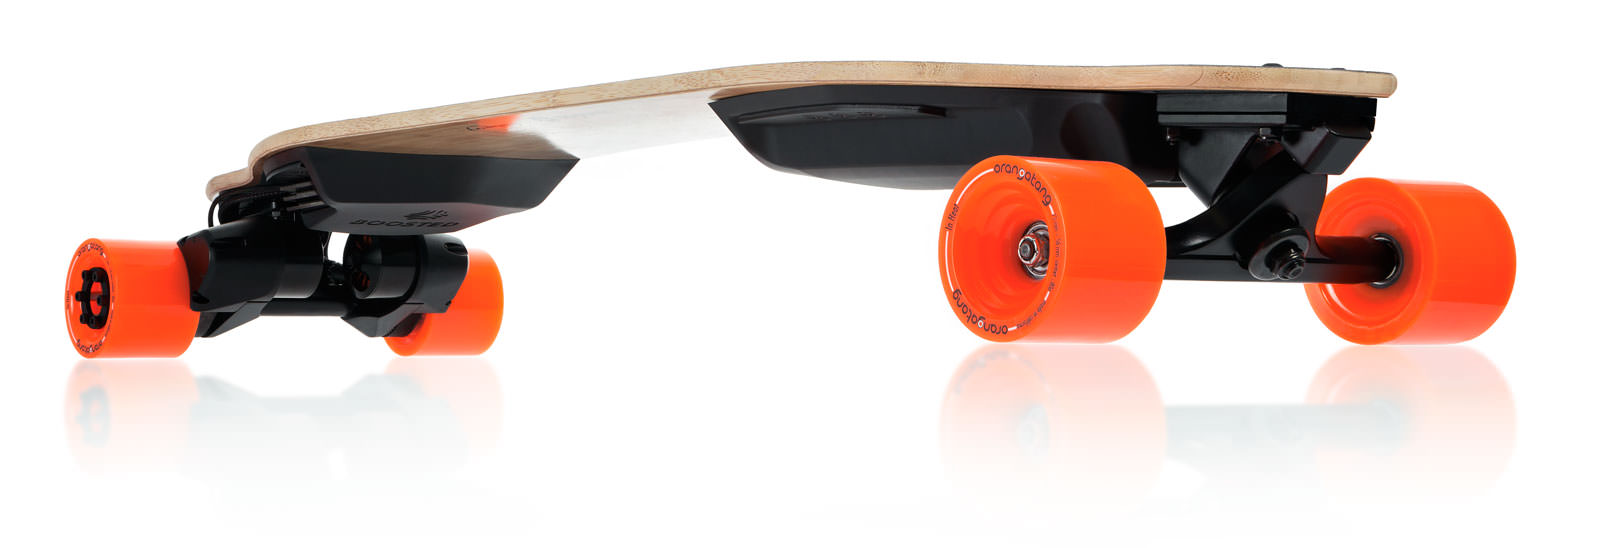 Boosted Boards02